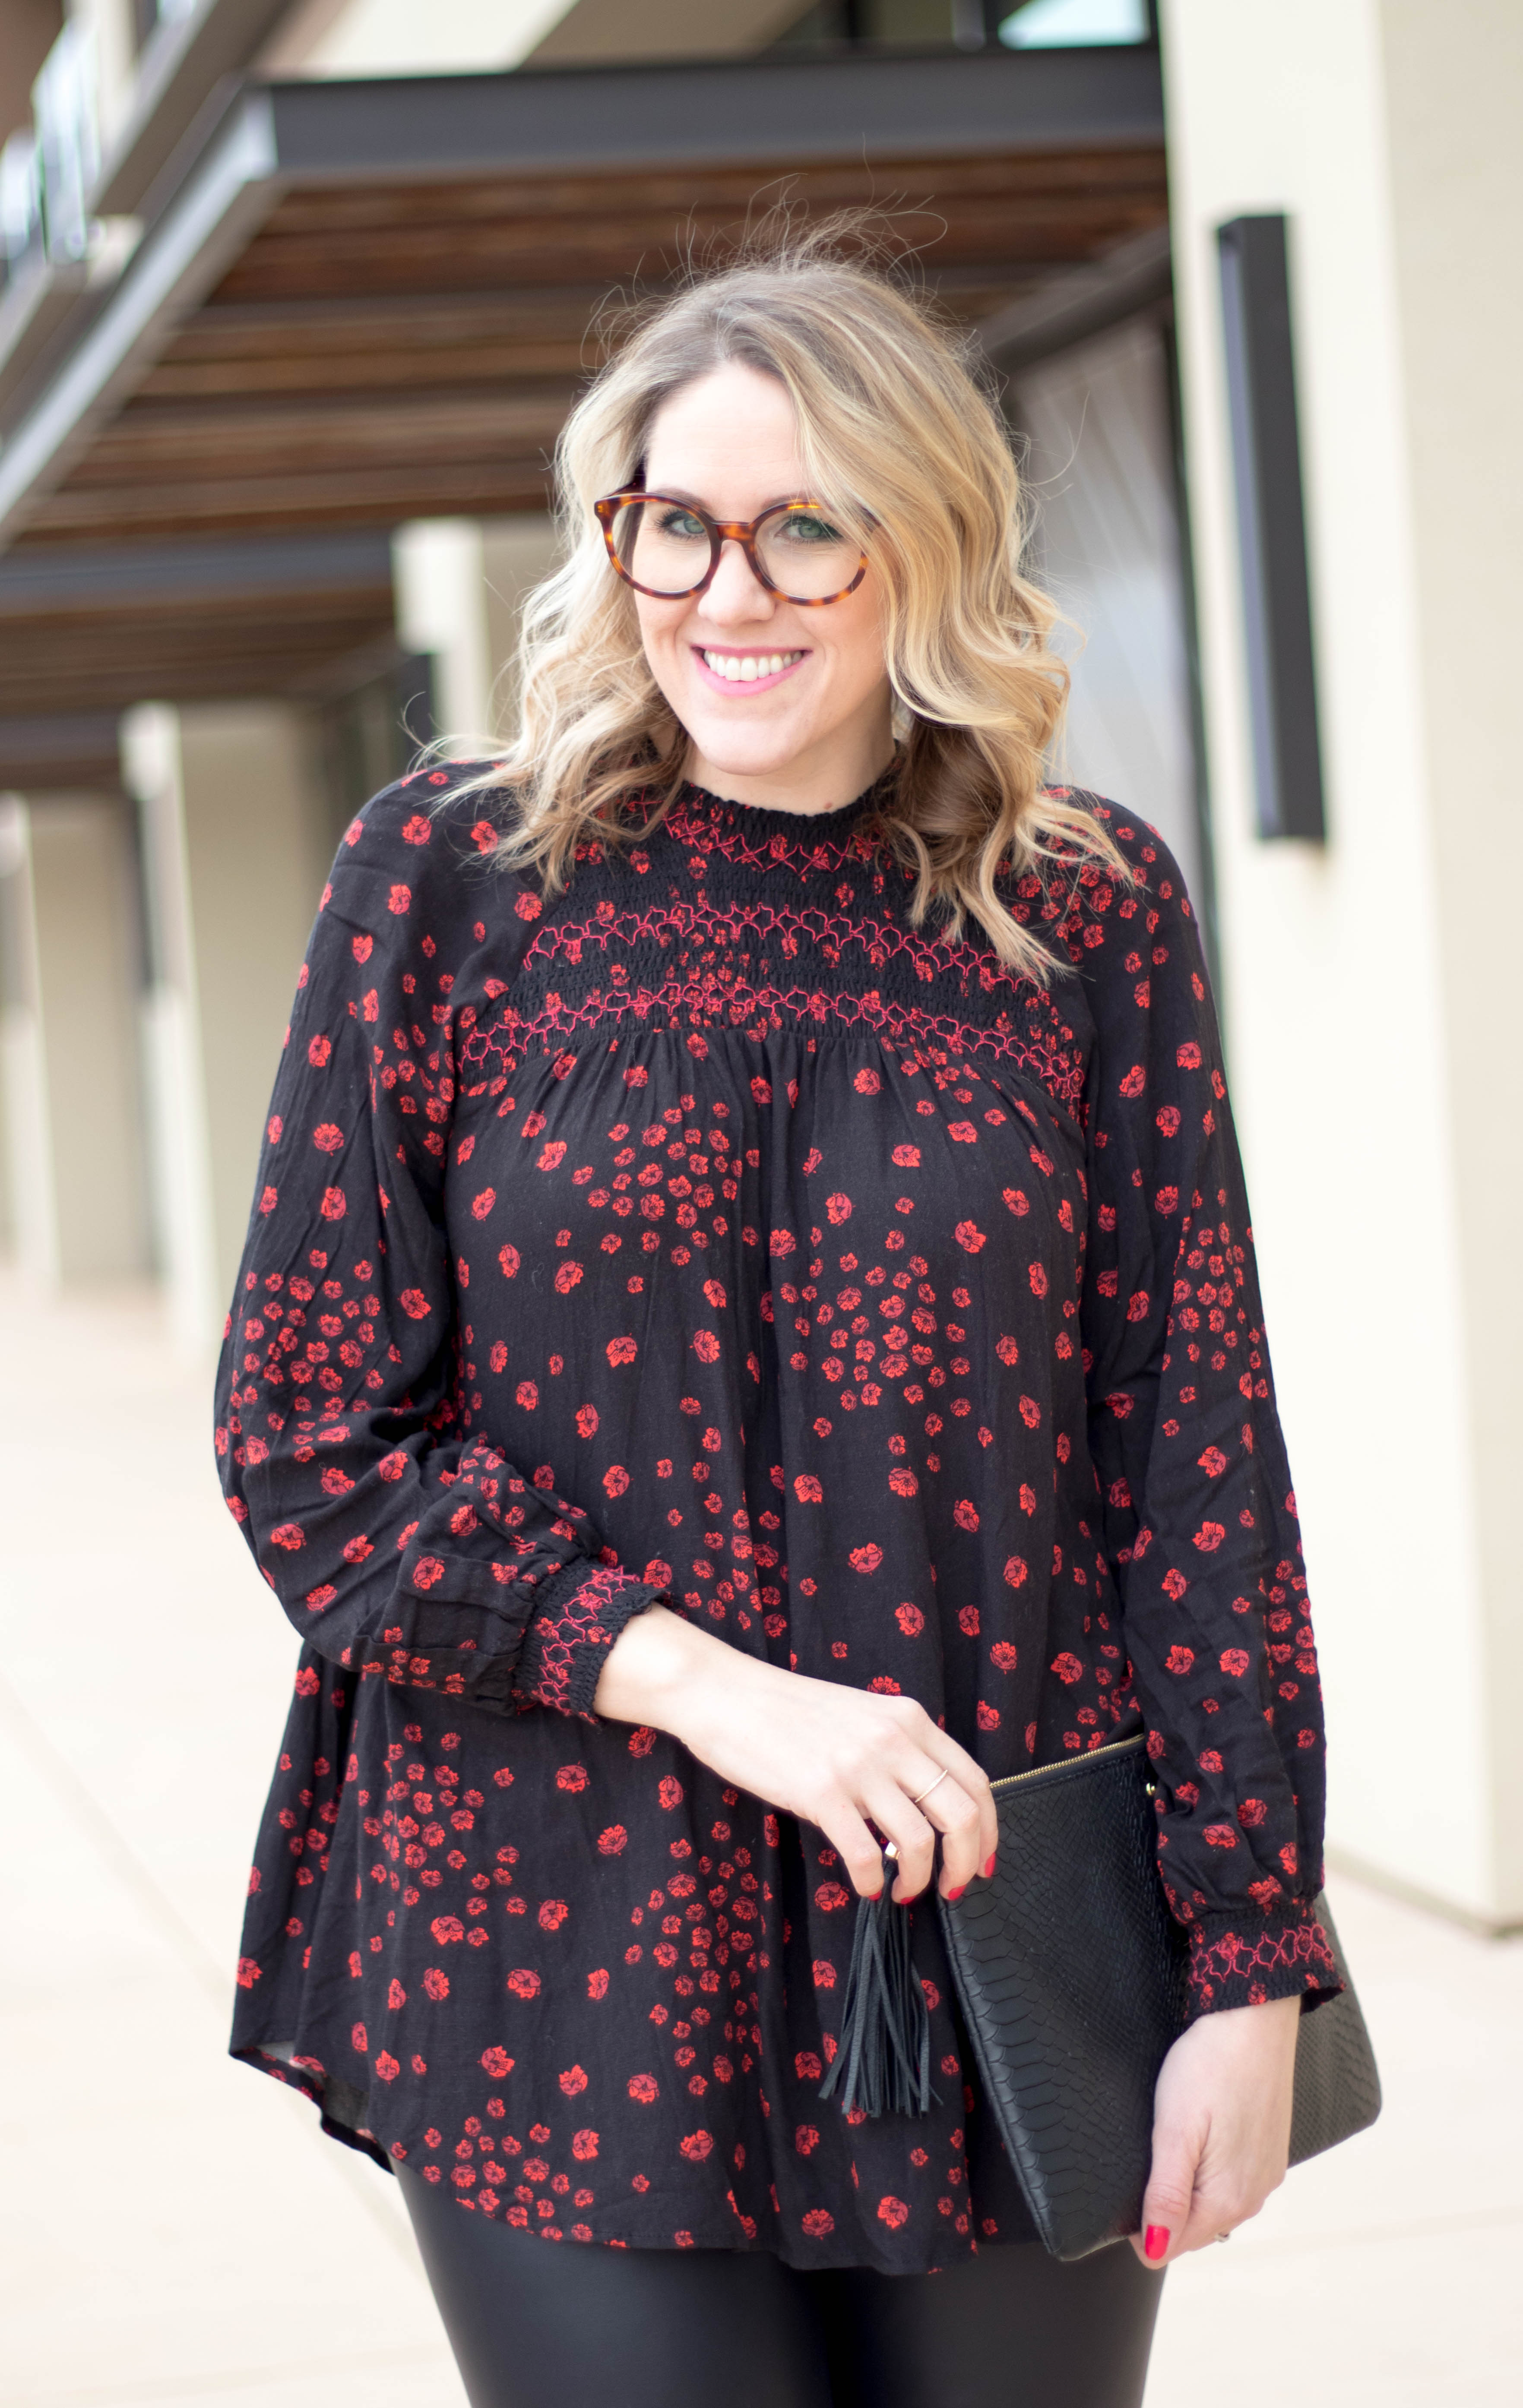 free people tunic outfit #freepeople #winterfashion #roundglasses